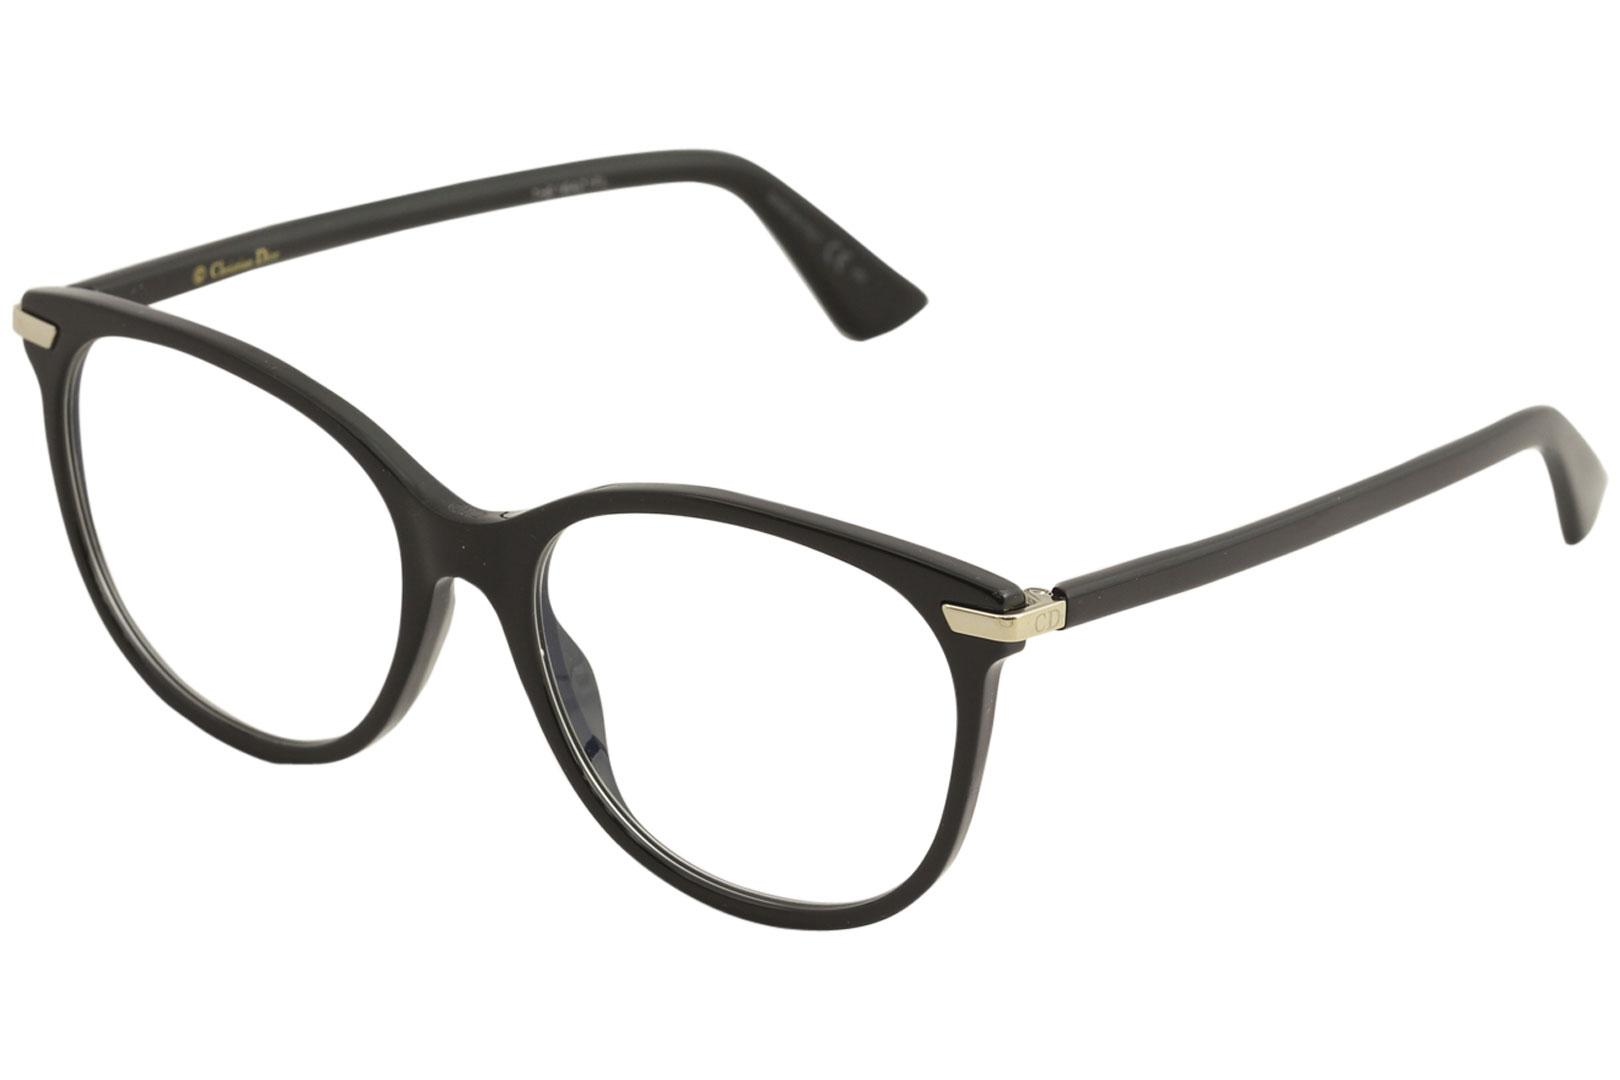 695683390e2 Christian Dior Eyeglasses Women s Dior Essence 11 Full Rim Optical Frame